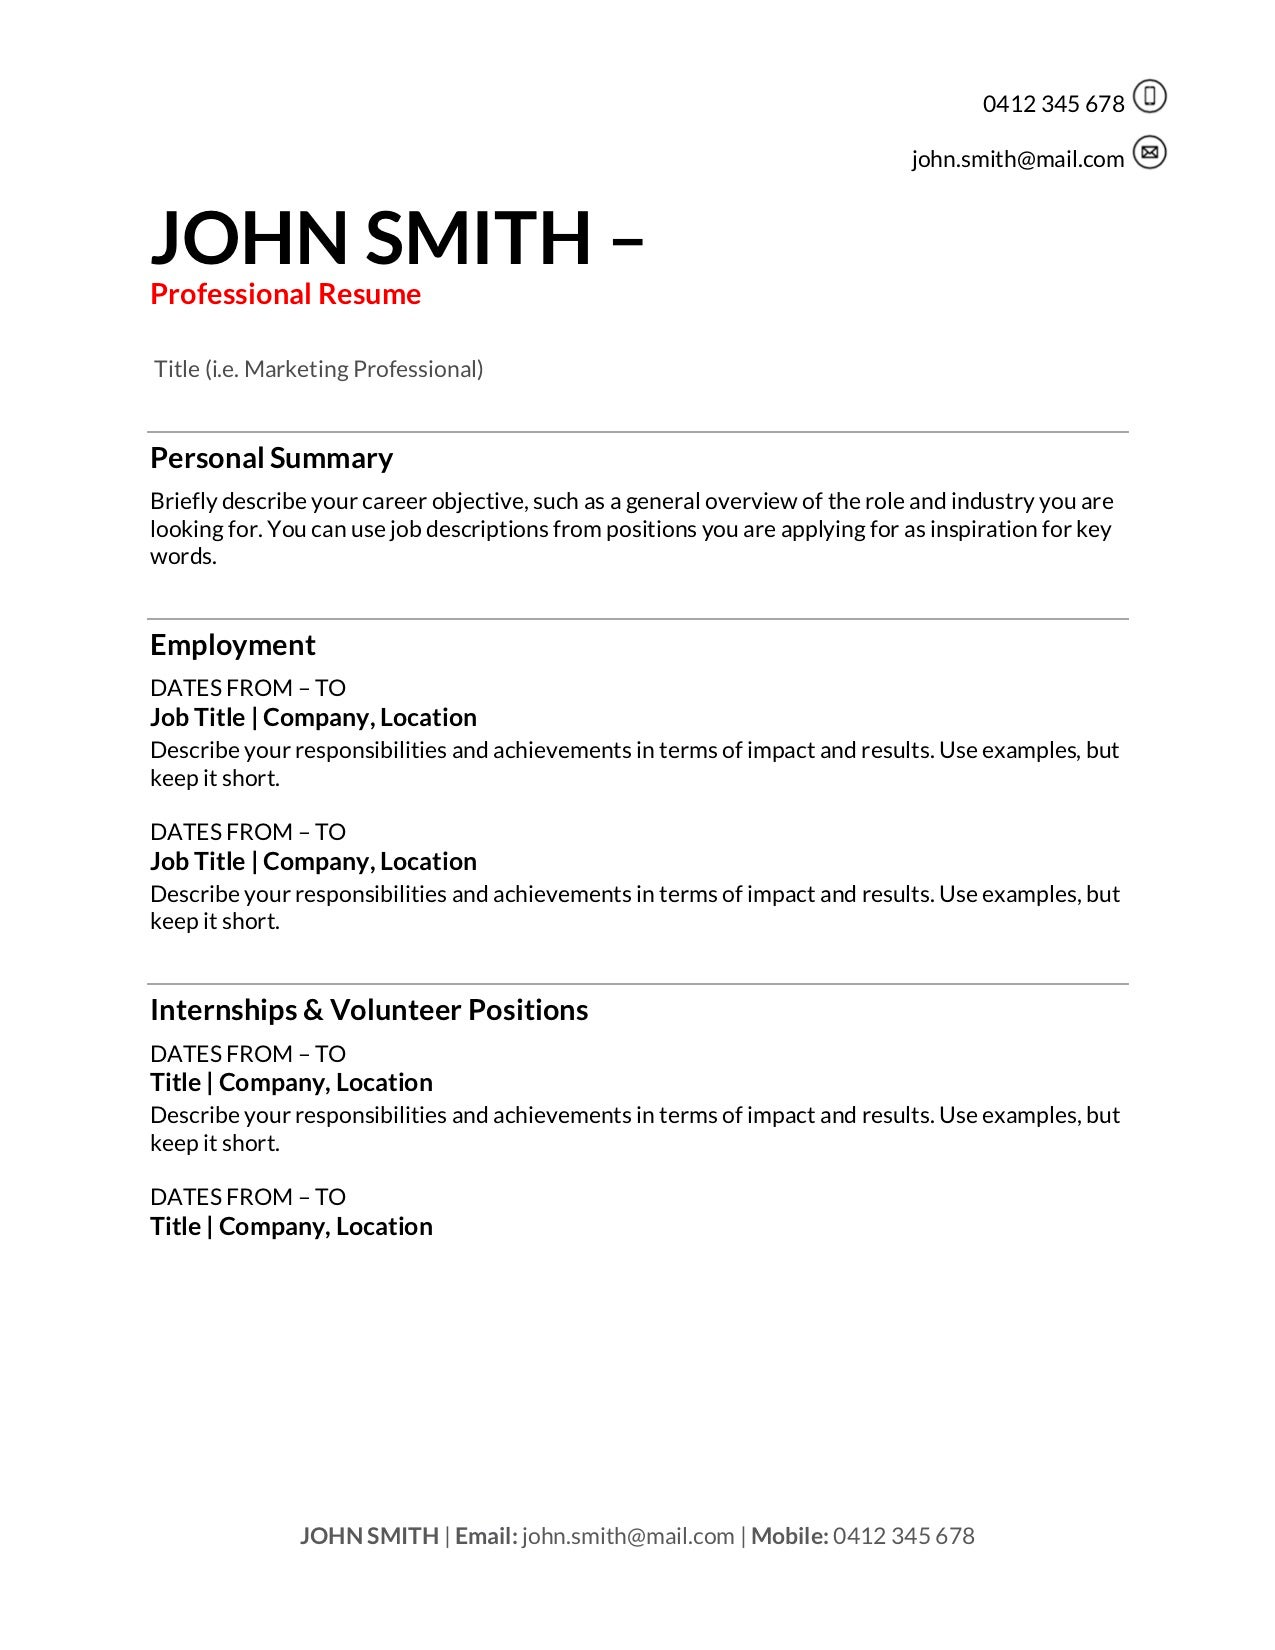 free resume templates to write in training au examples of good tableau skills cover Resume Examples Of Good Resume Templates